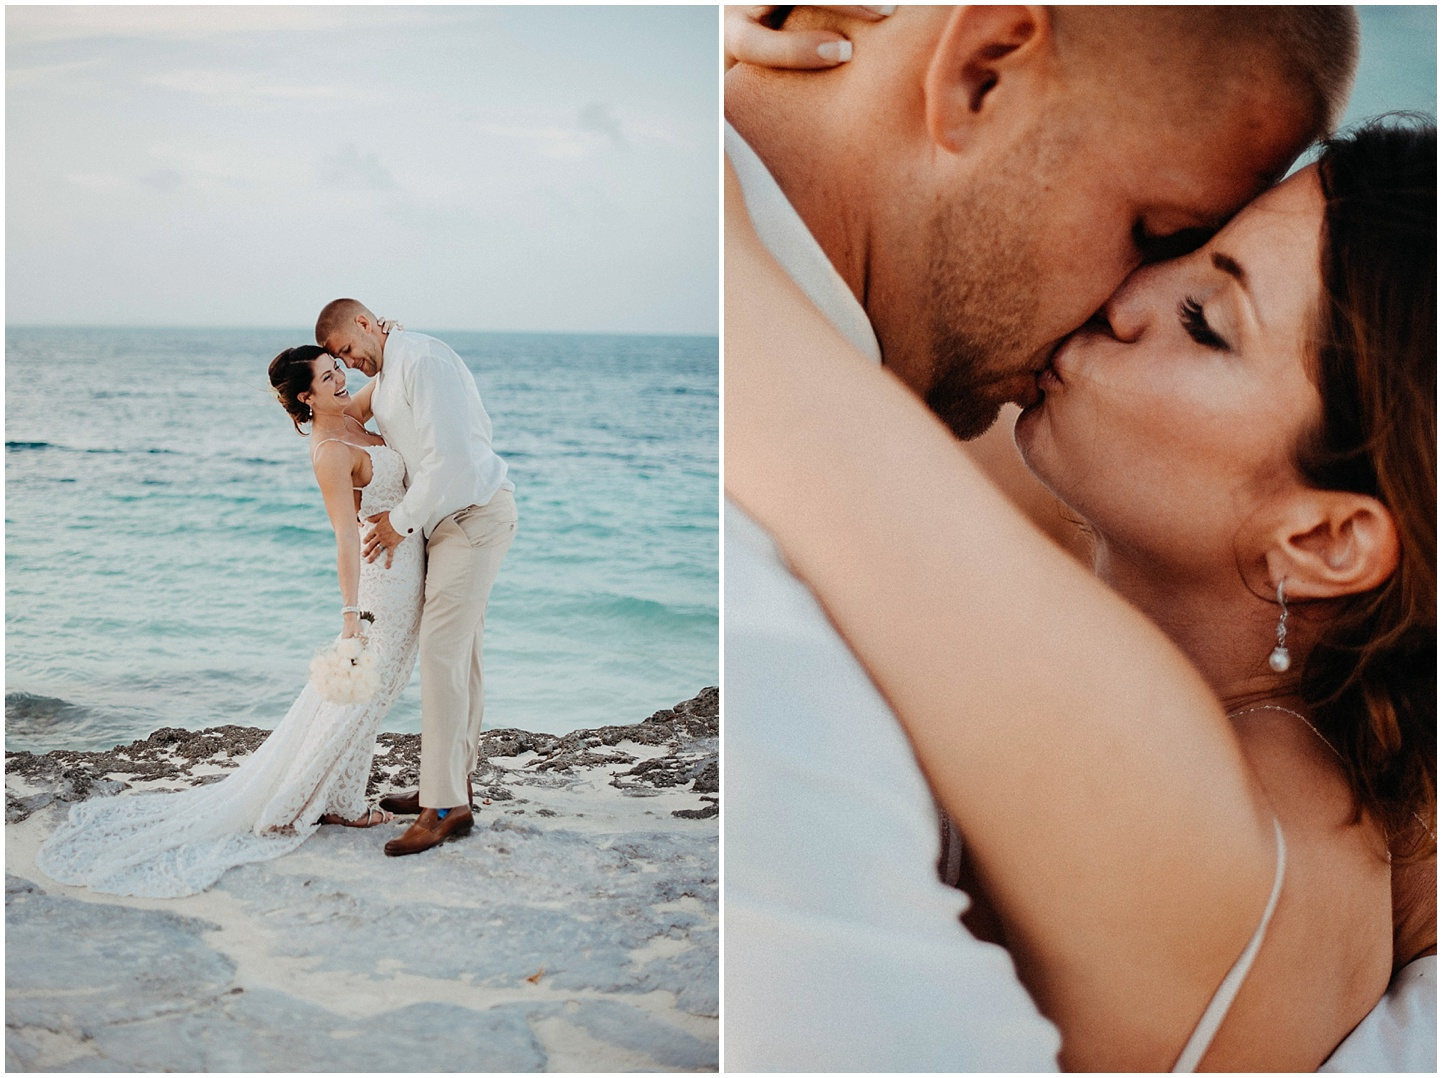 Beach-Wedding-Photography-Cancun-Elopement-Destination-Elopement-Photography-Destination-Beach-Wedding-+Costa-Rica-Wedding-Photography-Beach-Wedding-Photos-teresawoodhull-Cancun-Elopement-Beach-Wedding-+Sunset-Beach-Wedding-Fotografia-de-bodas-Nicoya-Peninsula-Elopement-Photographer-Santa-Teresa-Elopement-Photographer-Adventure-elopement-photographer-Santa-Teresa-Wedding-Photographer-Adventure-Wedding-Boda-playa-santa-teresa-Adventure-Wedding-Photography-Adventure-Wedding-Photographer-Beach-Elopement-Beach-Elopement-Photos-maddie-mae-Beach-Elopement-Photographer-Destination-Elopement-Photographer-Sunset-Beach-Elopement-Mexico-wedding-photographer-cabo-wedding-photographer-mexico-wedding-mexico-destination-wedding-cancun-destination-wedding-cancun-elopement-photographer-playa-del-carmen-wedding-playa-del-carmen-destination-wedding-photographer-playa-del-carmen-wedding-photography-Nicoya-Peninsula-Wedding-Photography-Nicoya-Peninsula-Wedding-Photographer-Nicoya-Peninsula-Elopement-Photography-riu-cancun-riu-wedding-riu-destination-wedding-destination-wedding-in-mexico-beachside-elopement-julia-tony-wedding